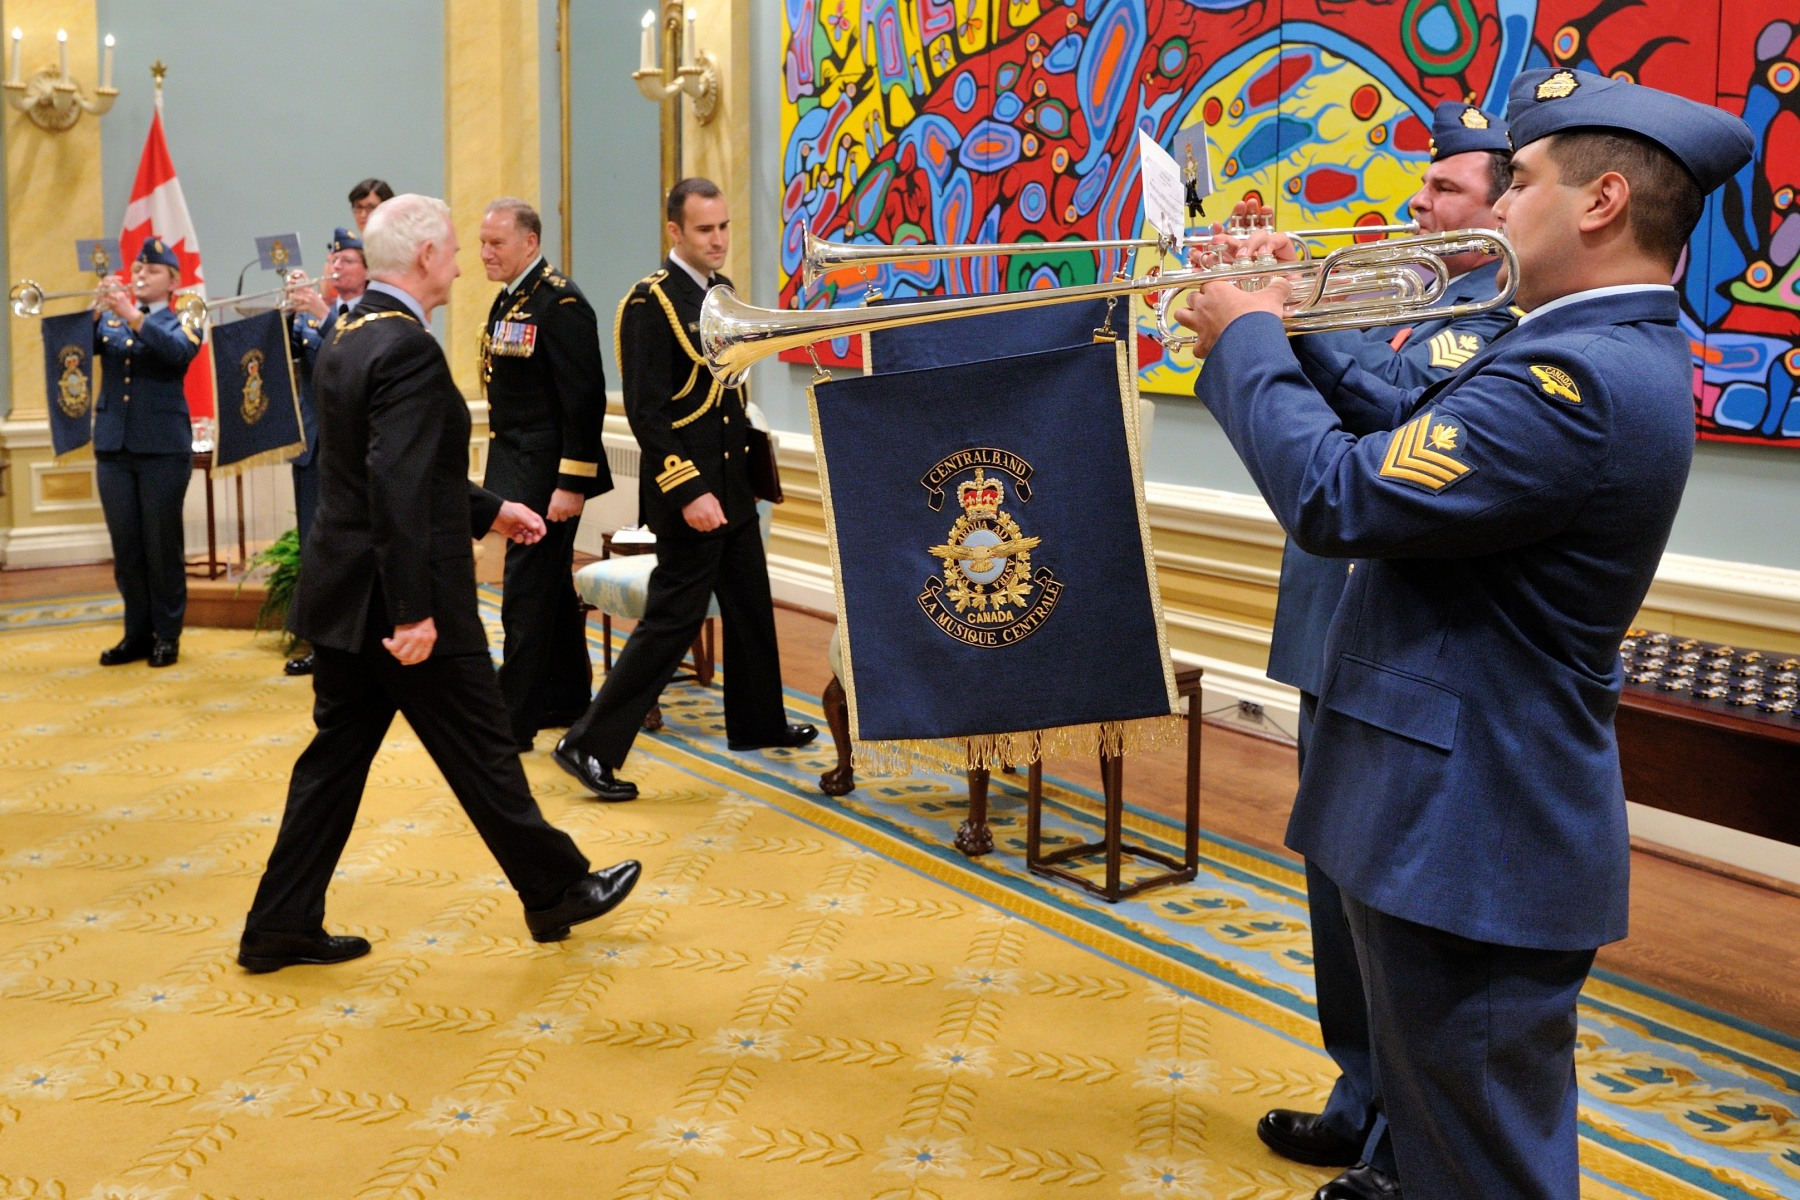 On this special occasion, a brass ensemble played during the vice-regal procession.